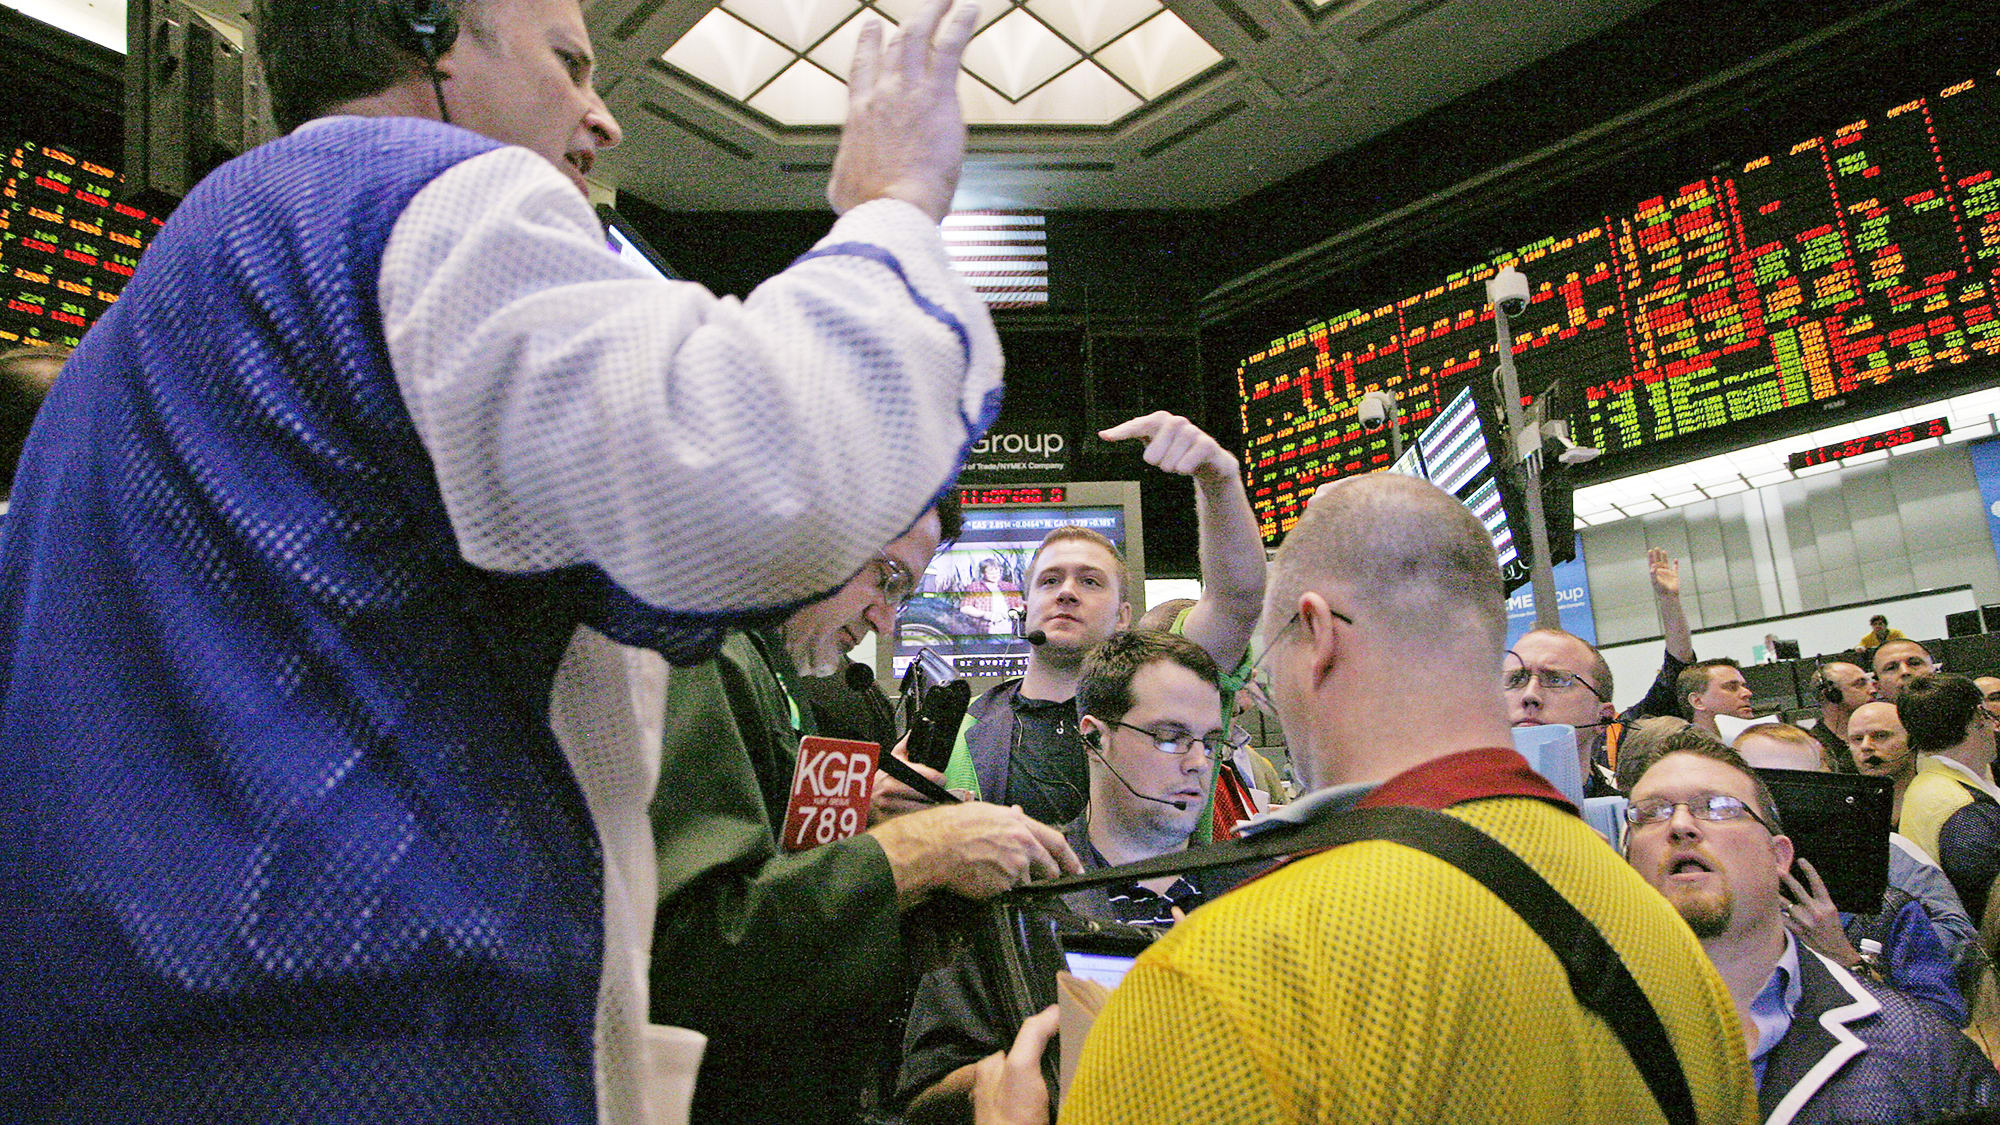 Treasury yields inch higher as stimulus hopes lift markets